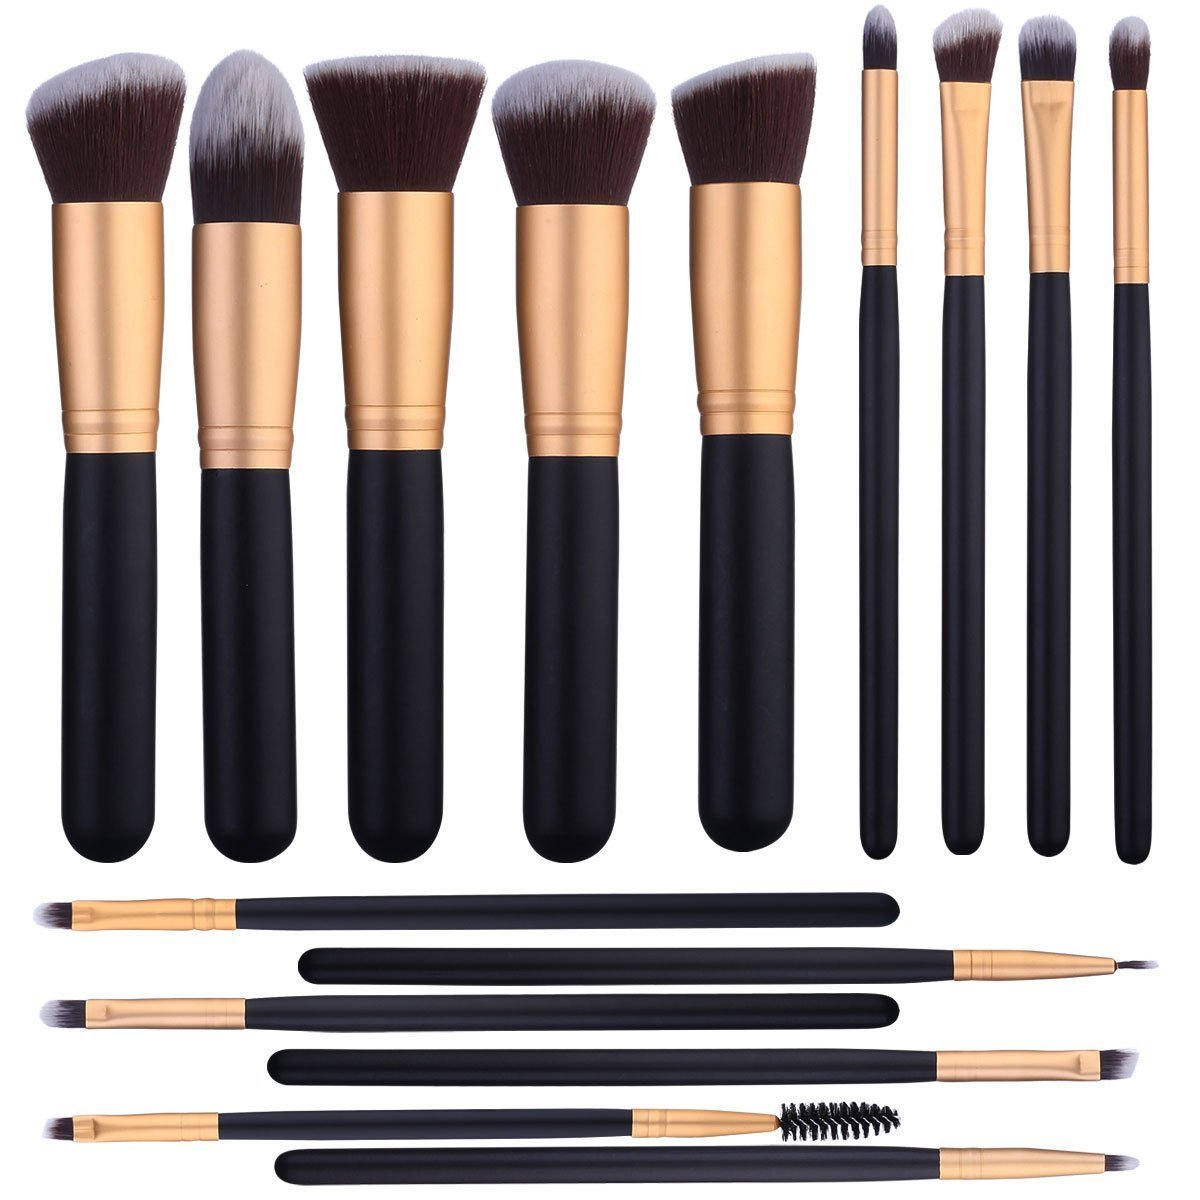 Dailymall Makeup Synthetic Bristles Brushes Set, 12-Piece 990370